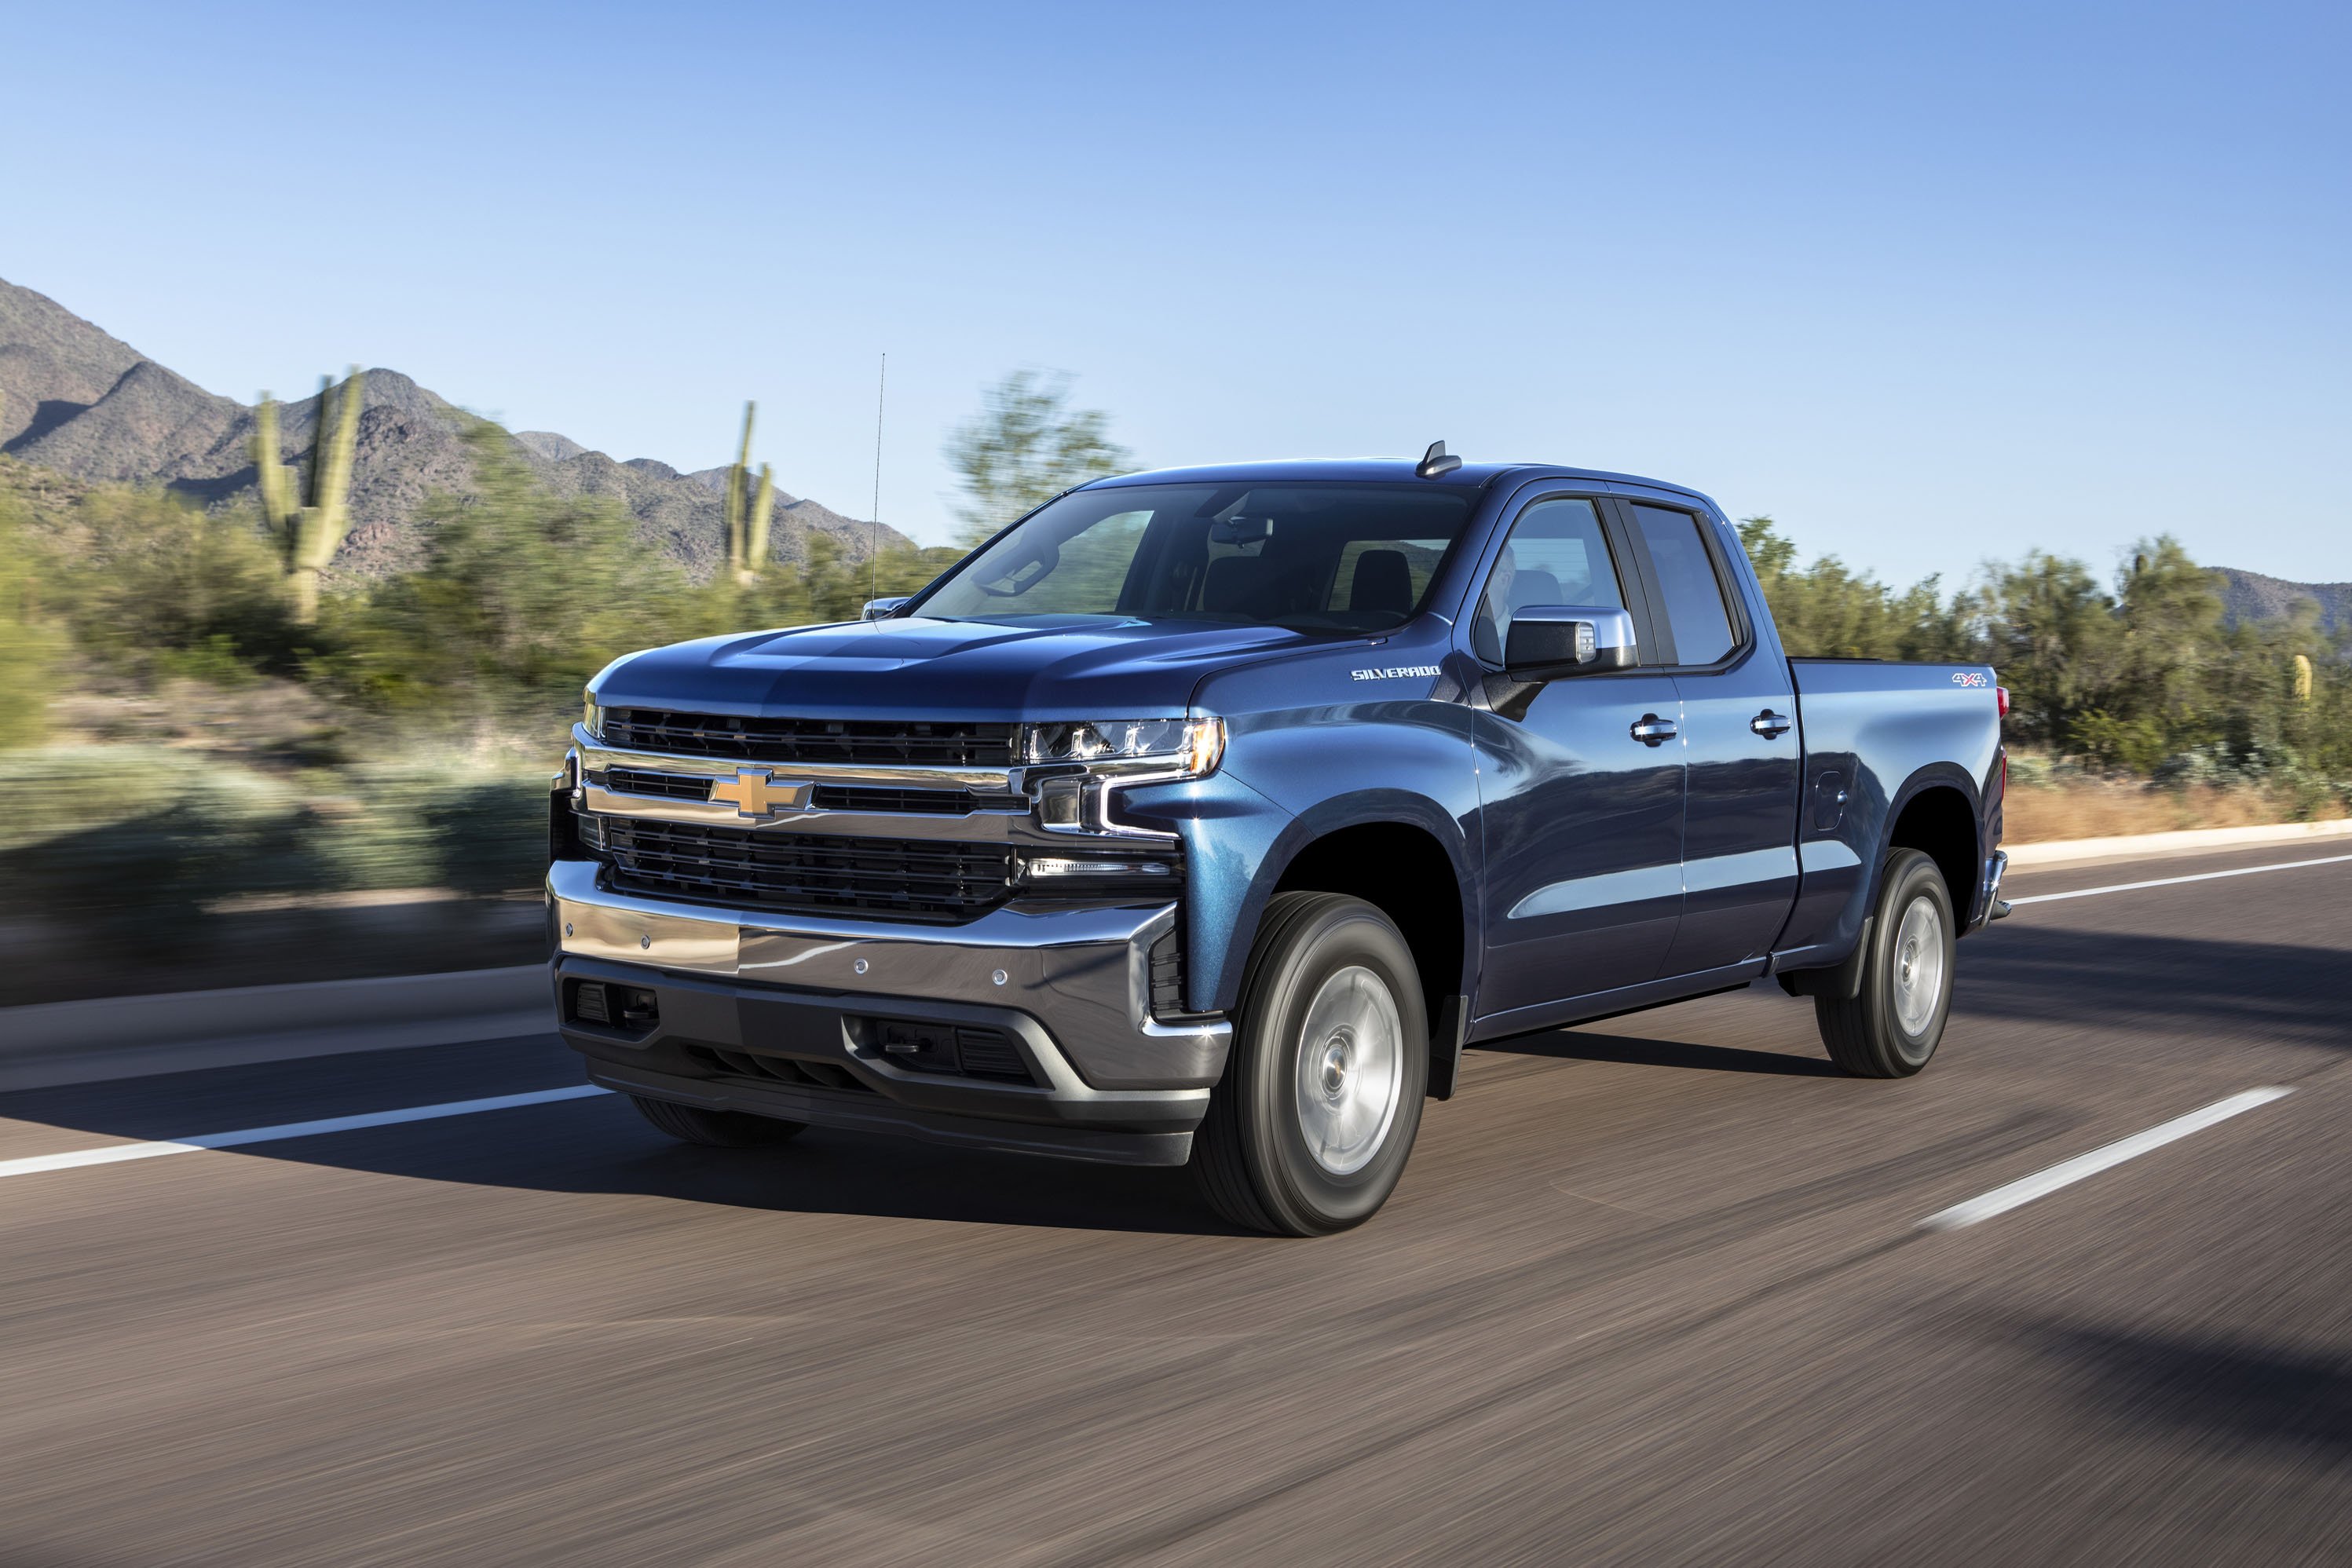 Chevy Silverado Mpg Turbo 4 Lower Than V 8 In Gas Mileage Test